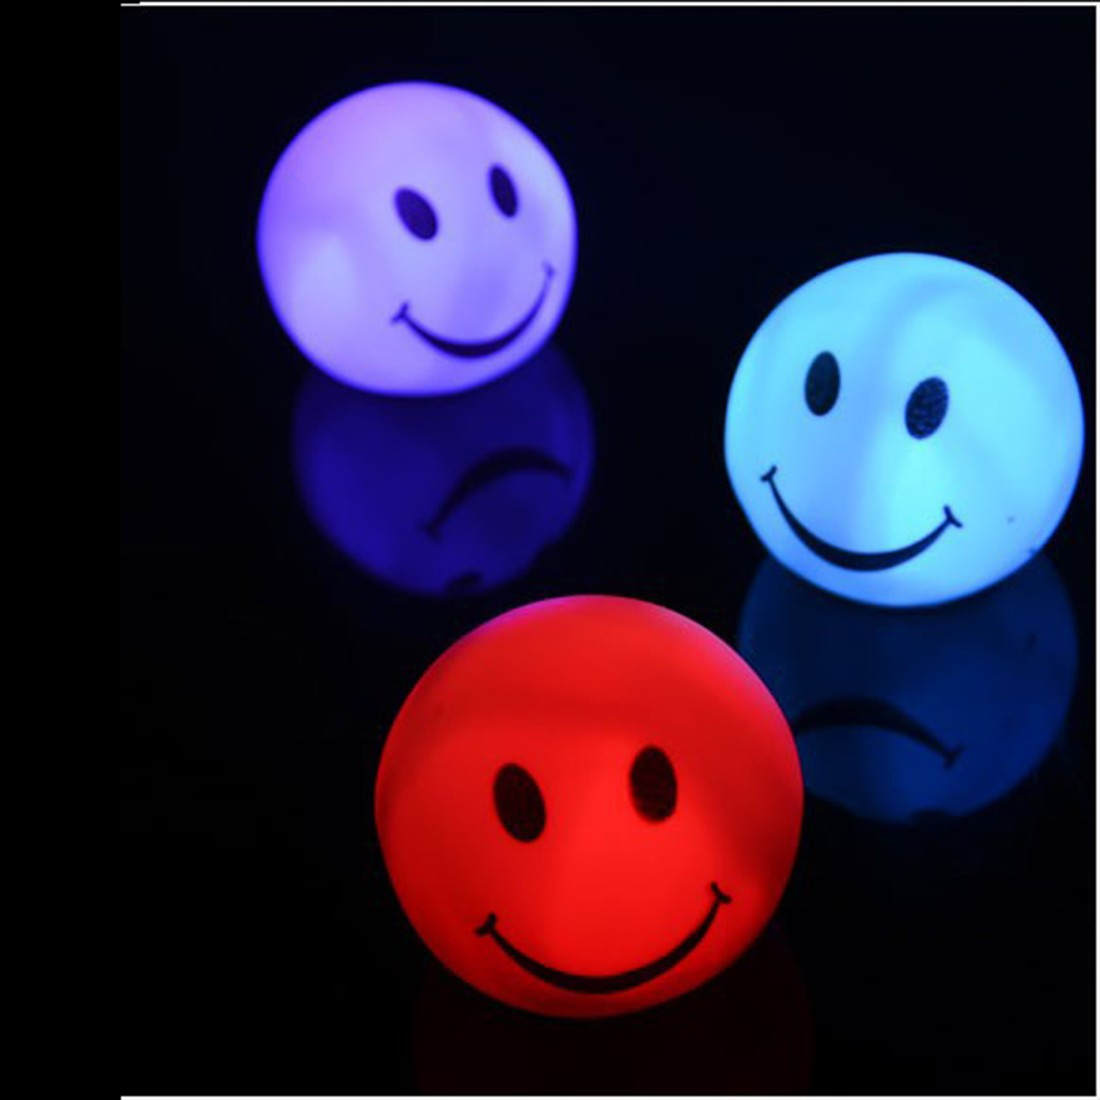 New Fashion Color Changing LED Smiling Face Shaped Night Light Lamp For Party Bedroom Decor Wedding Christmas Gifts smiling face pattern color changing night light lamp white 3 x lr44